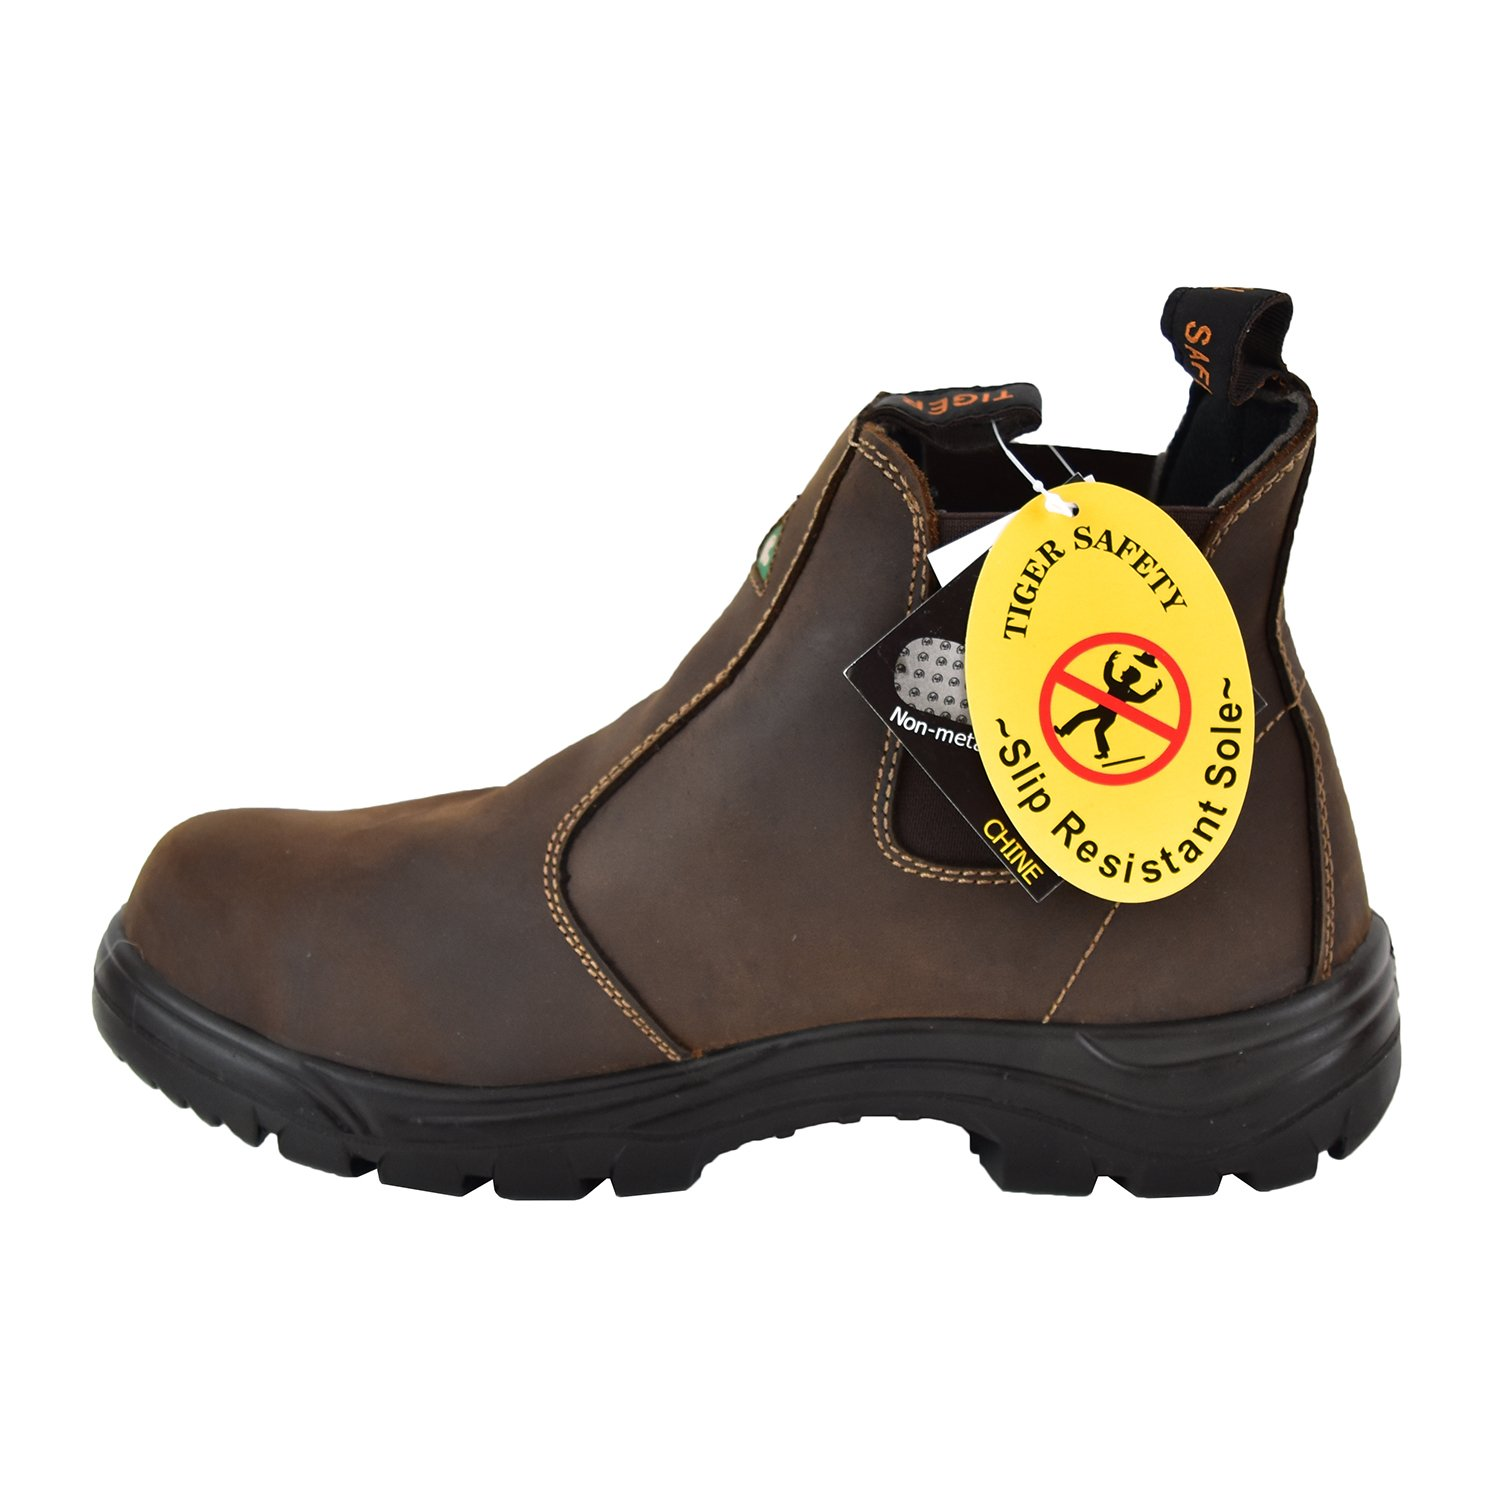 Tiger Safety Safety Men's Lightweight CSA Leather Work Safety Tiger Boots - 5925 B07BCL77K5 Fire & Safety d06551